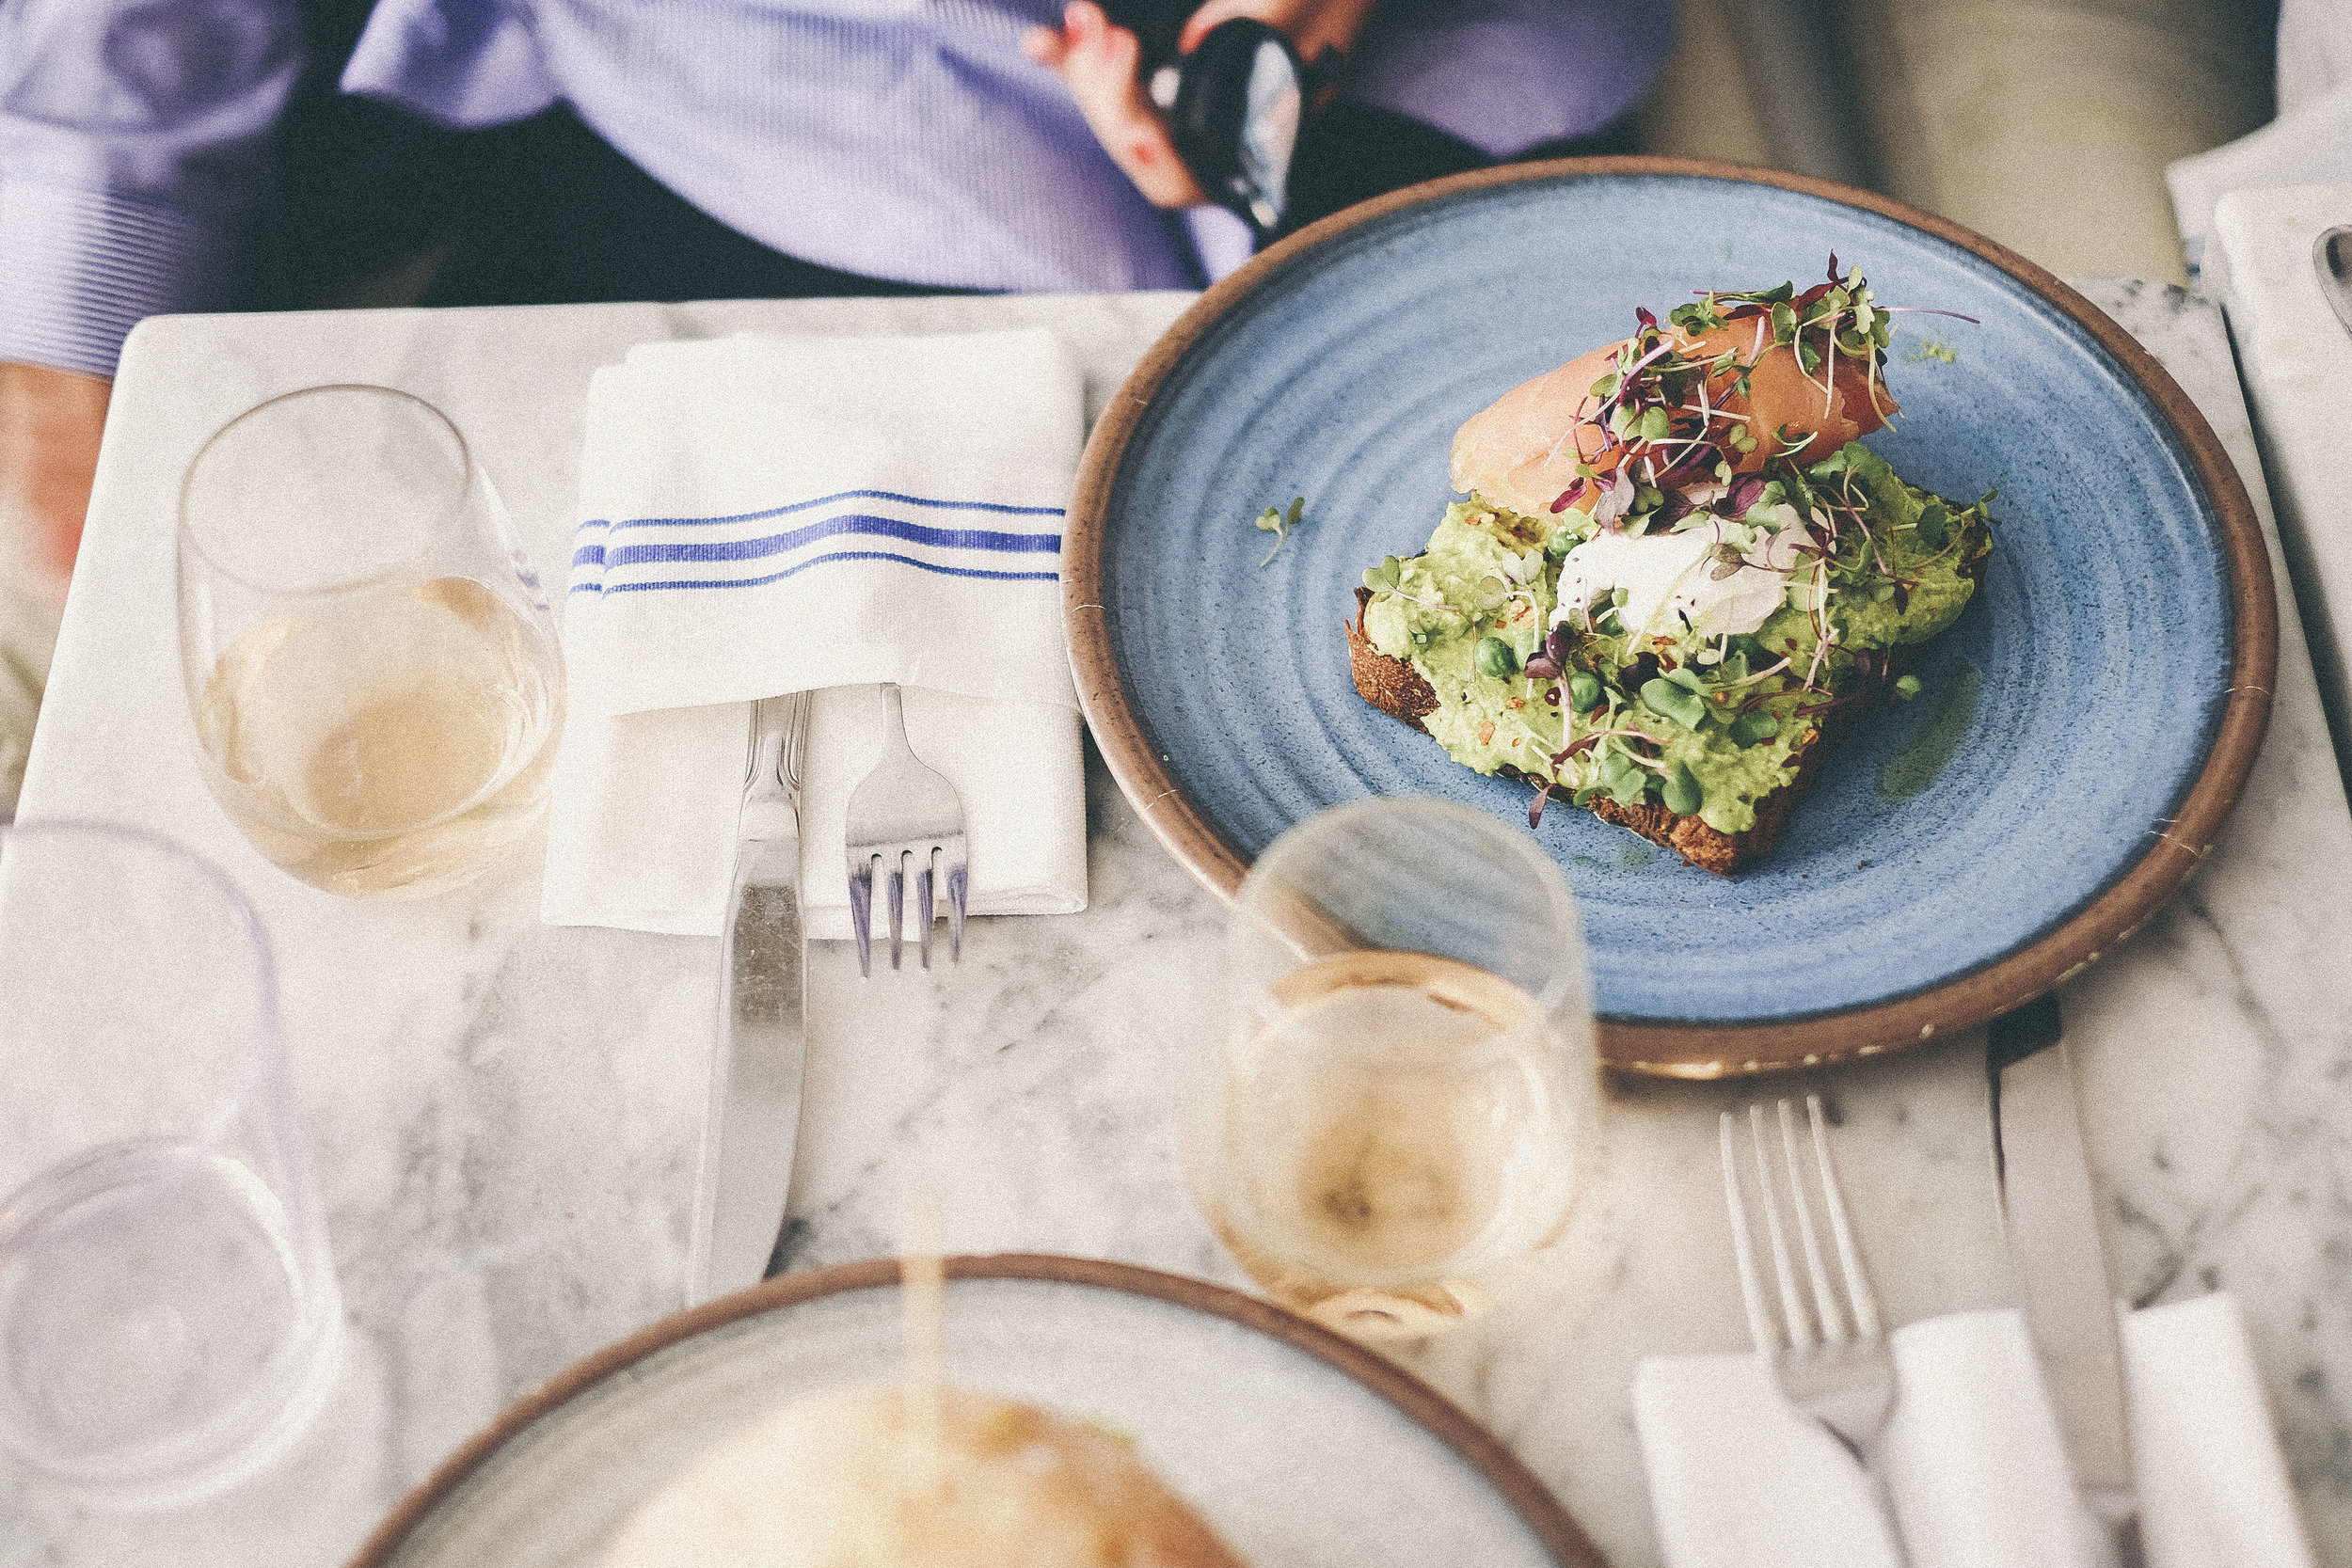 the best places to eat and drink healthy in new york! www.derrive.com #newyork #nyc #healthy #wellness #healthytravel #vegan #paleo